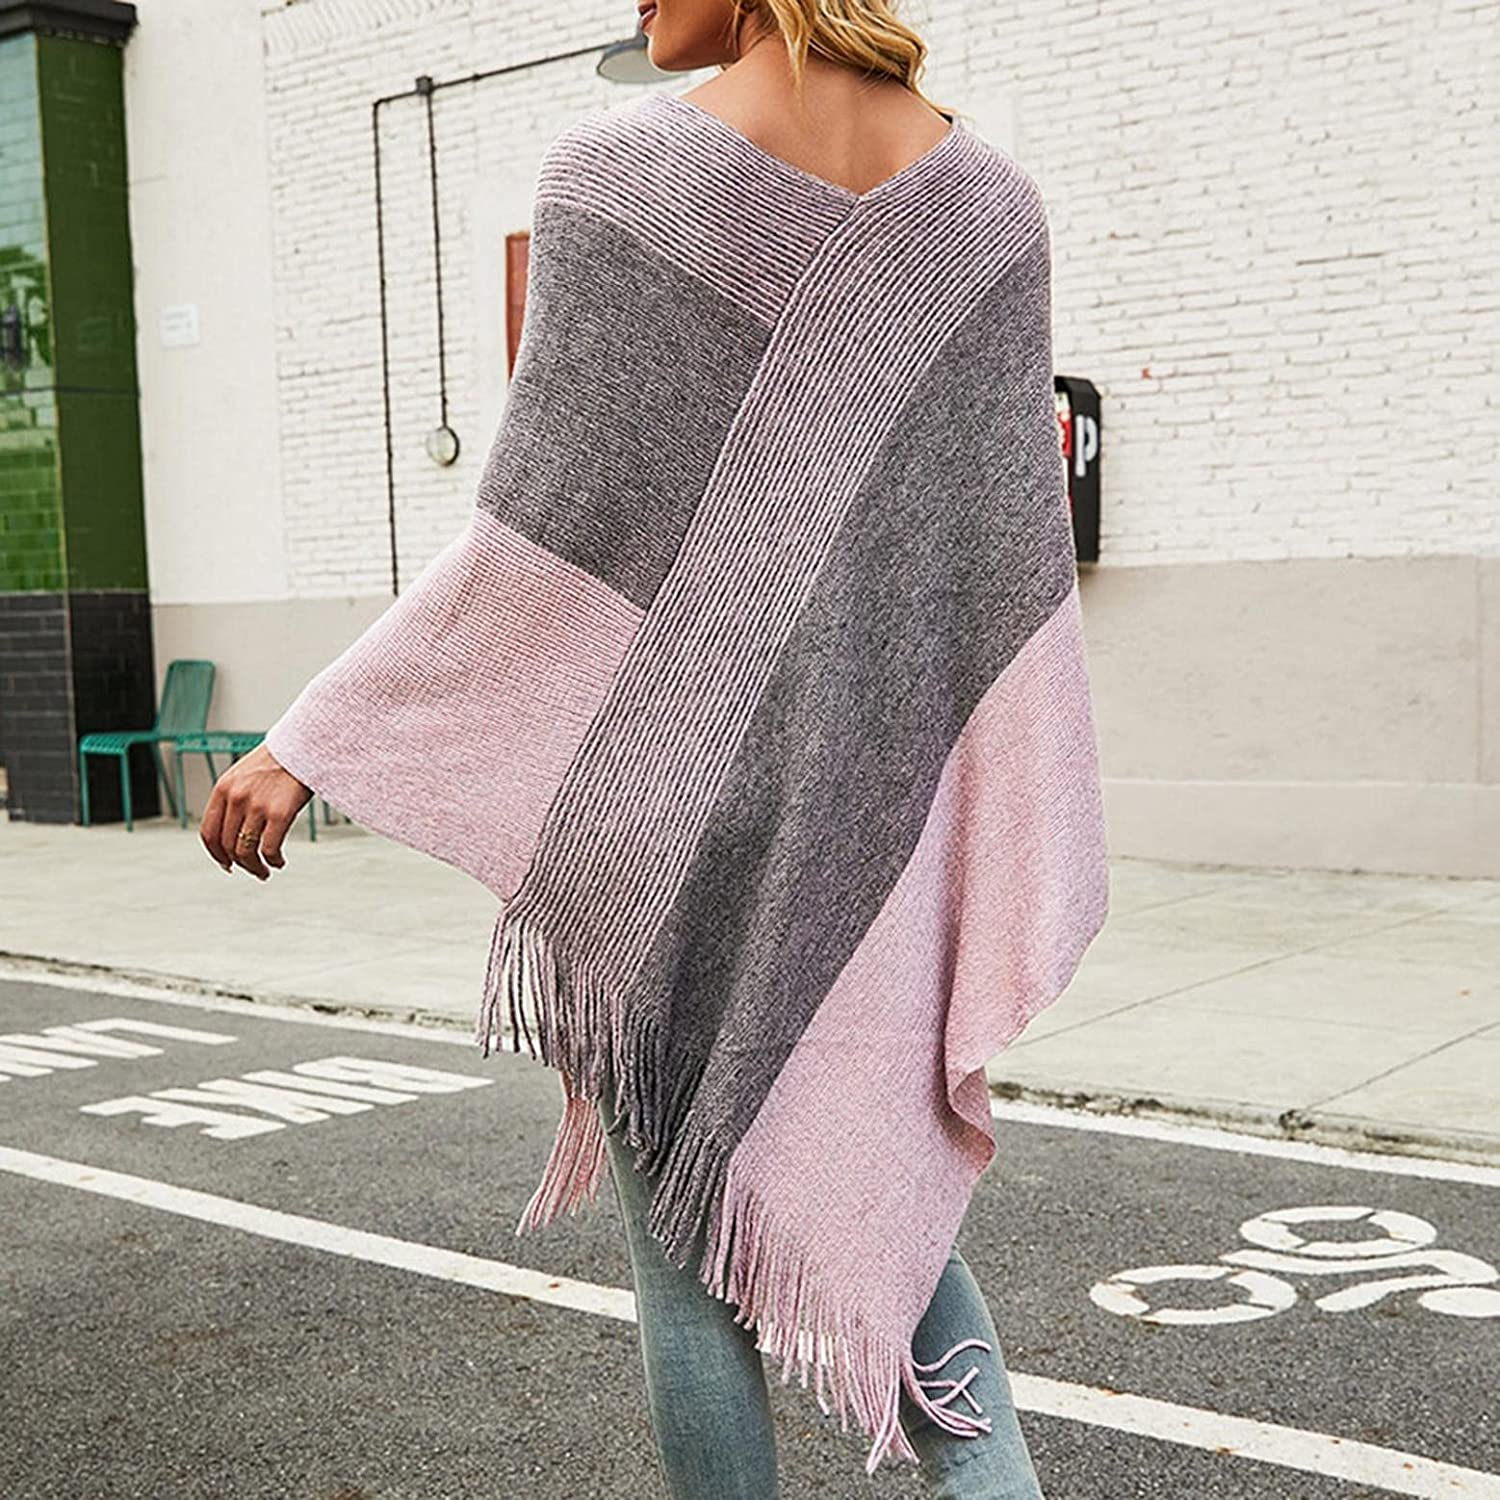 Changeshopping Womens Elegant Knitted Pullover Cape Tops with Stripe Patterns and Fringed Sides